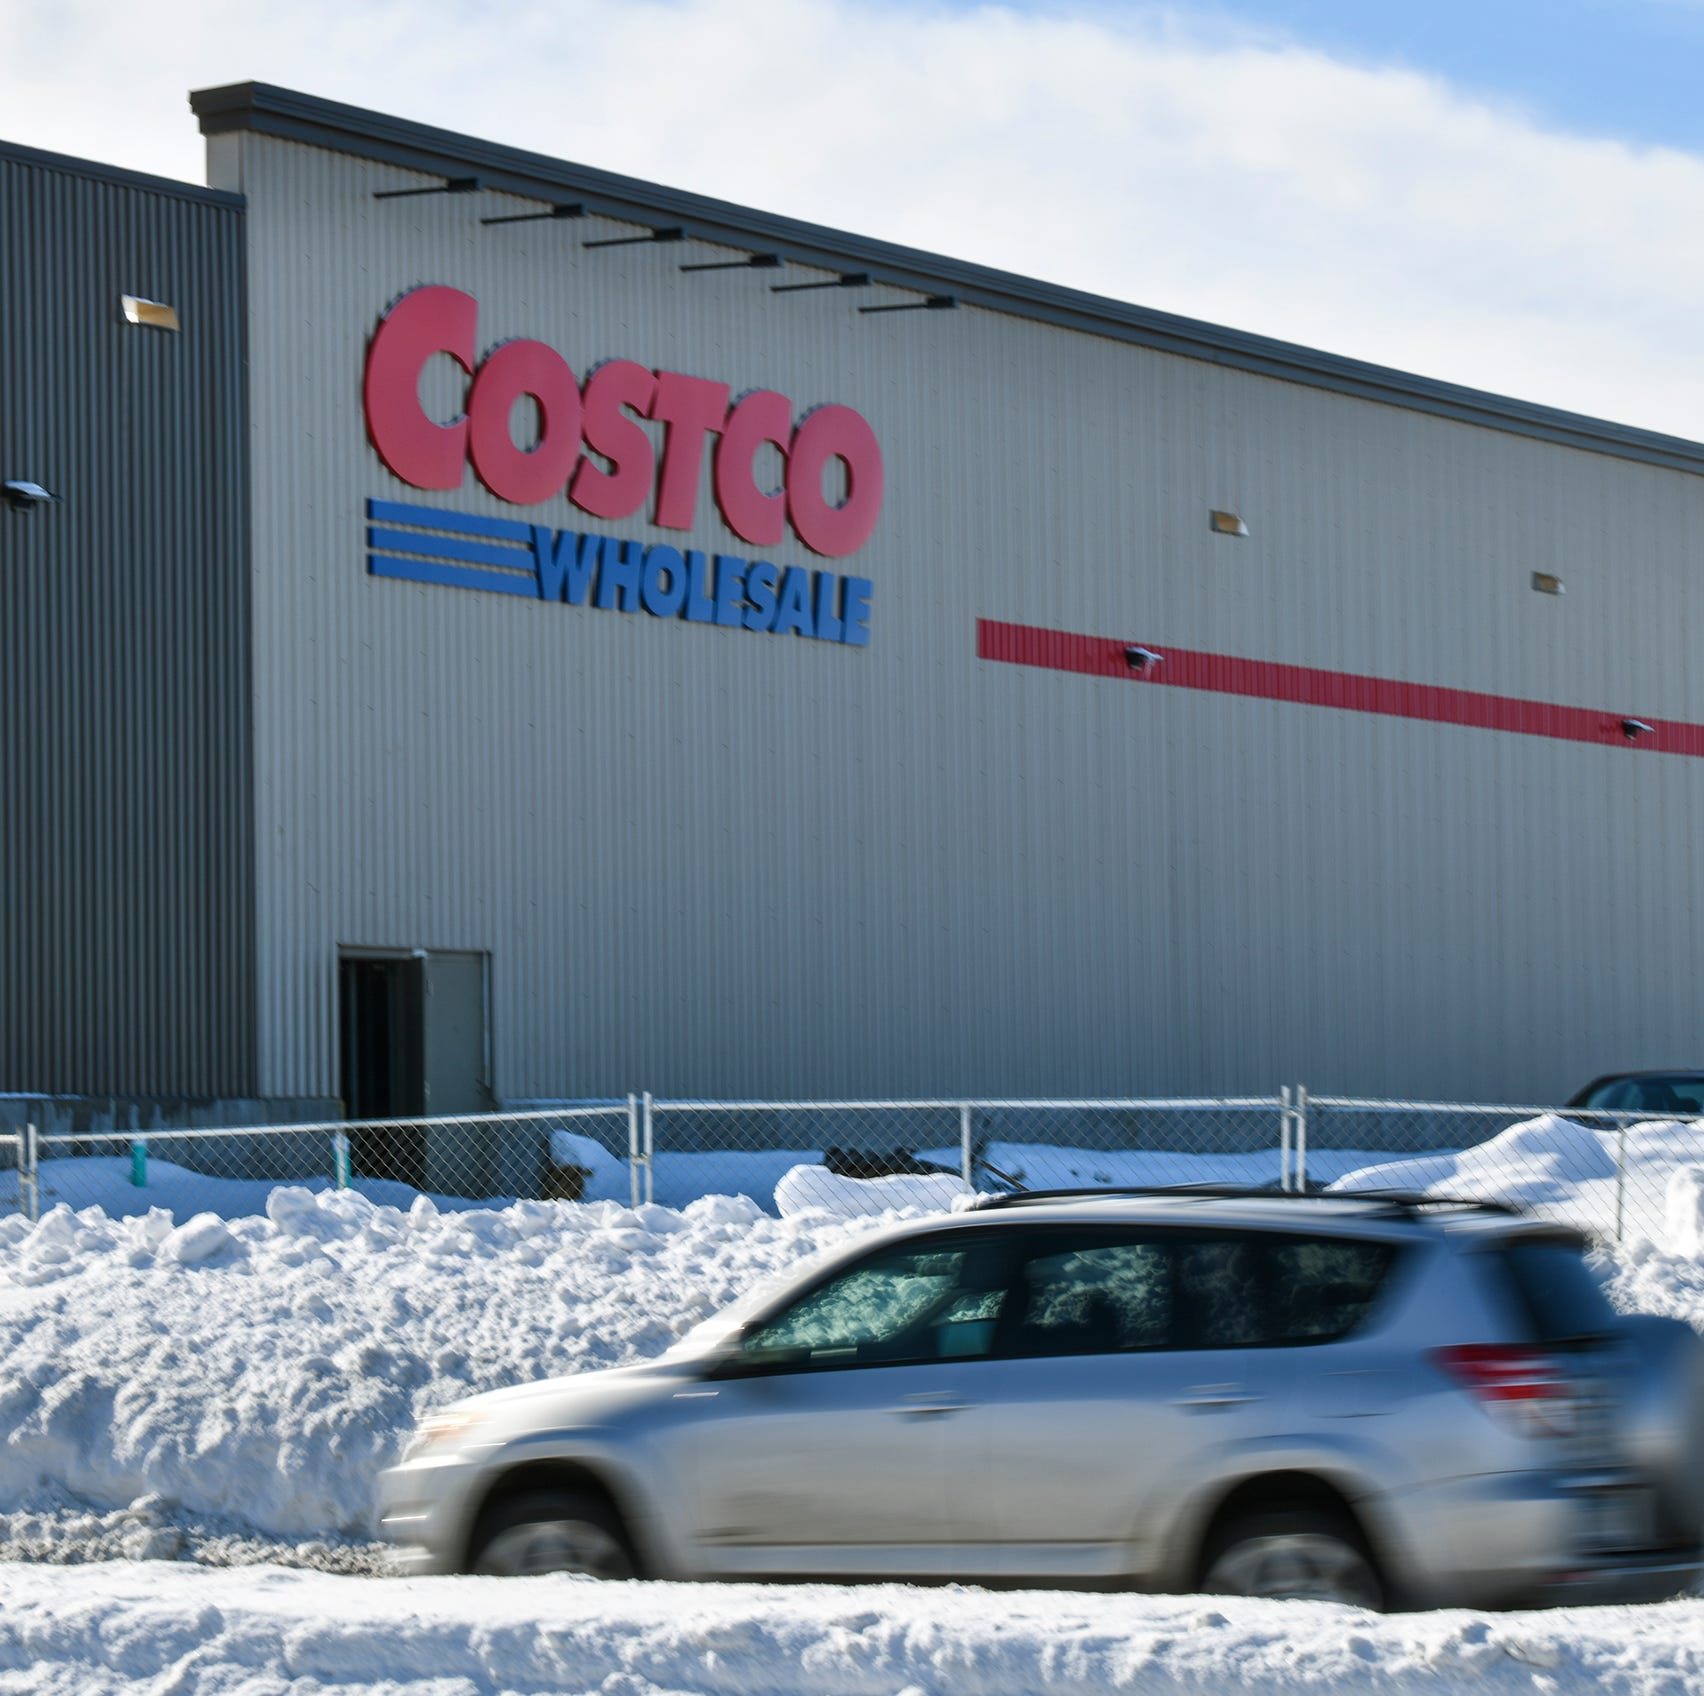 Costco targets late June opening date in St. Cloud